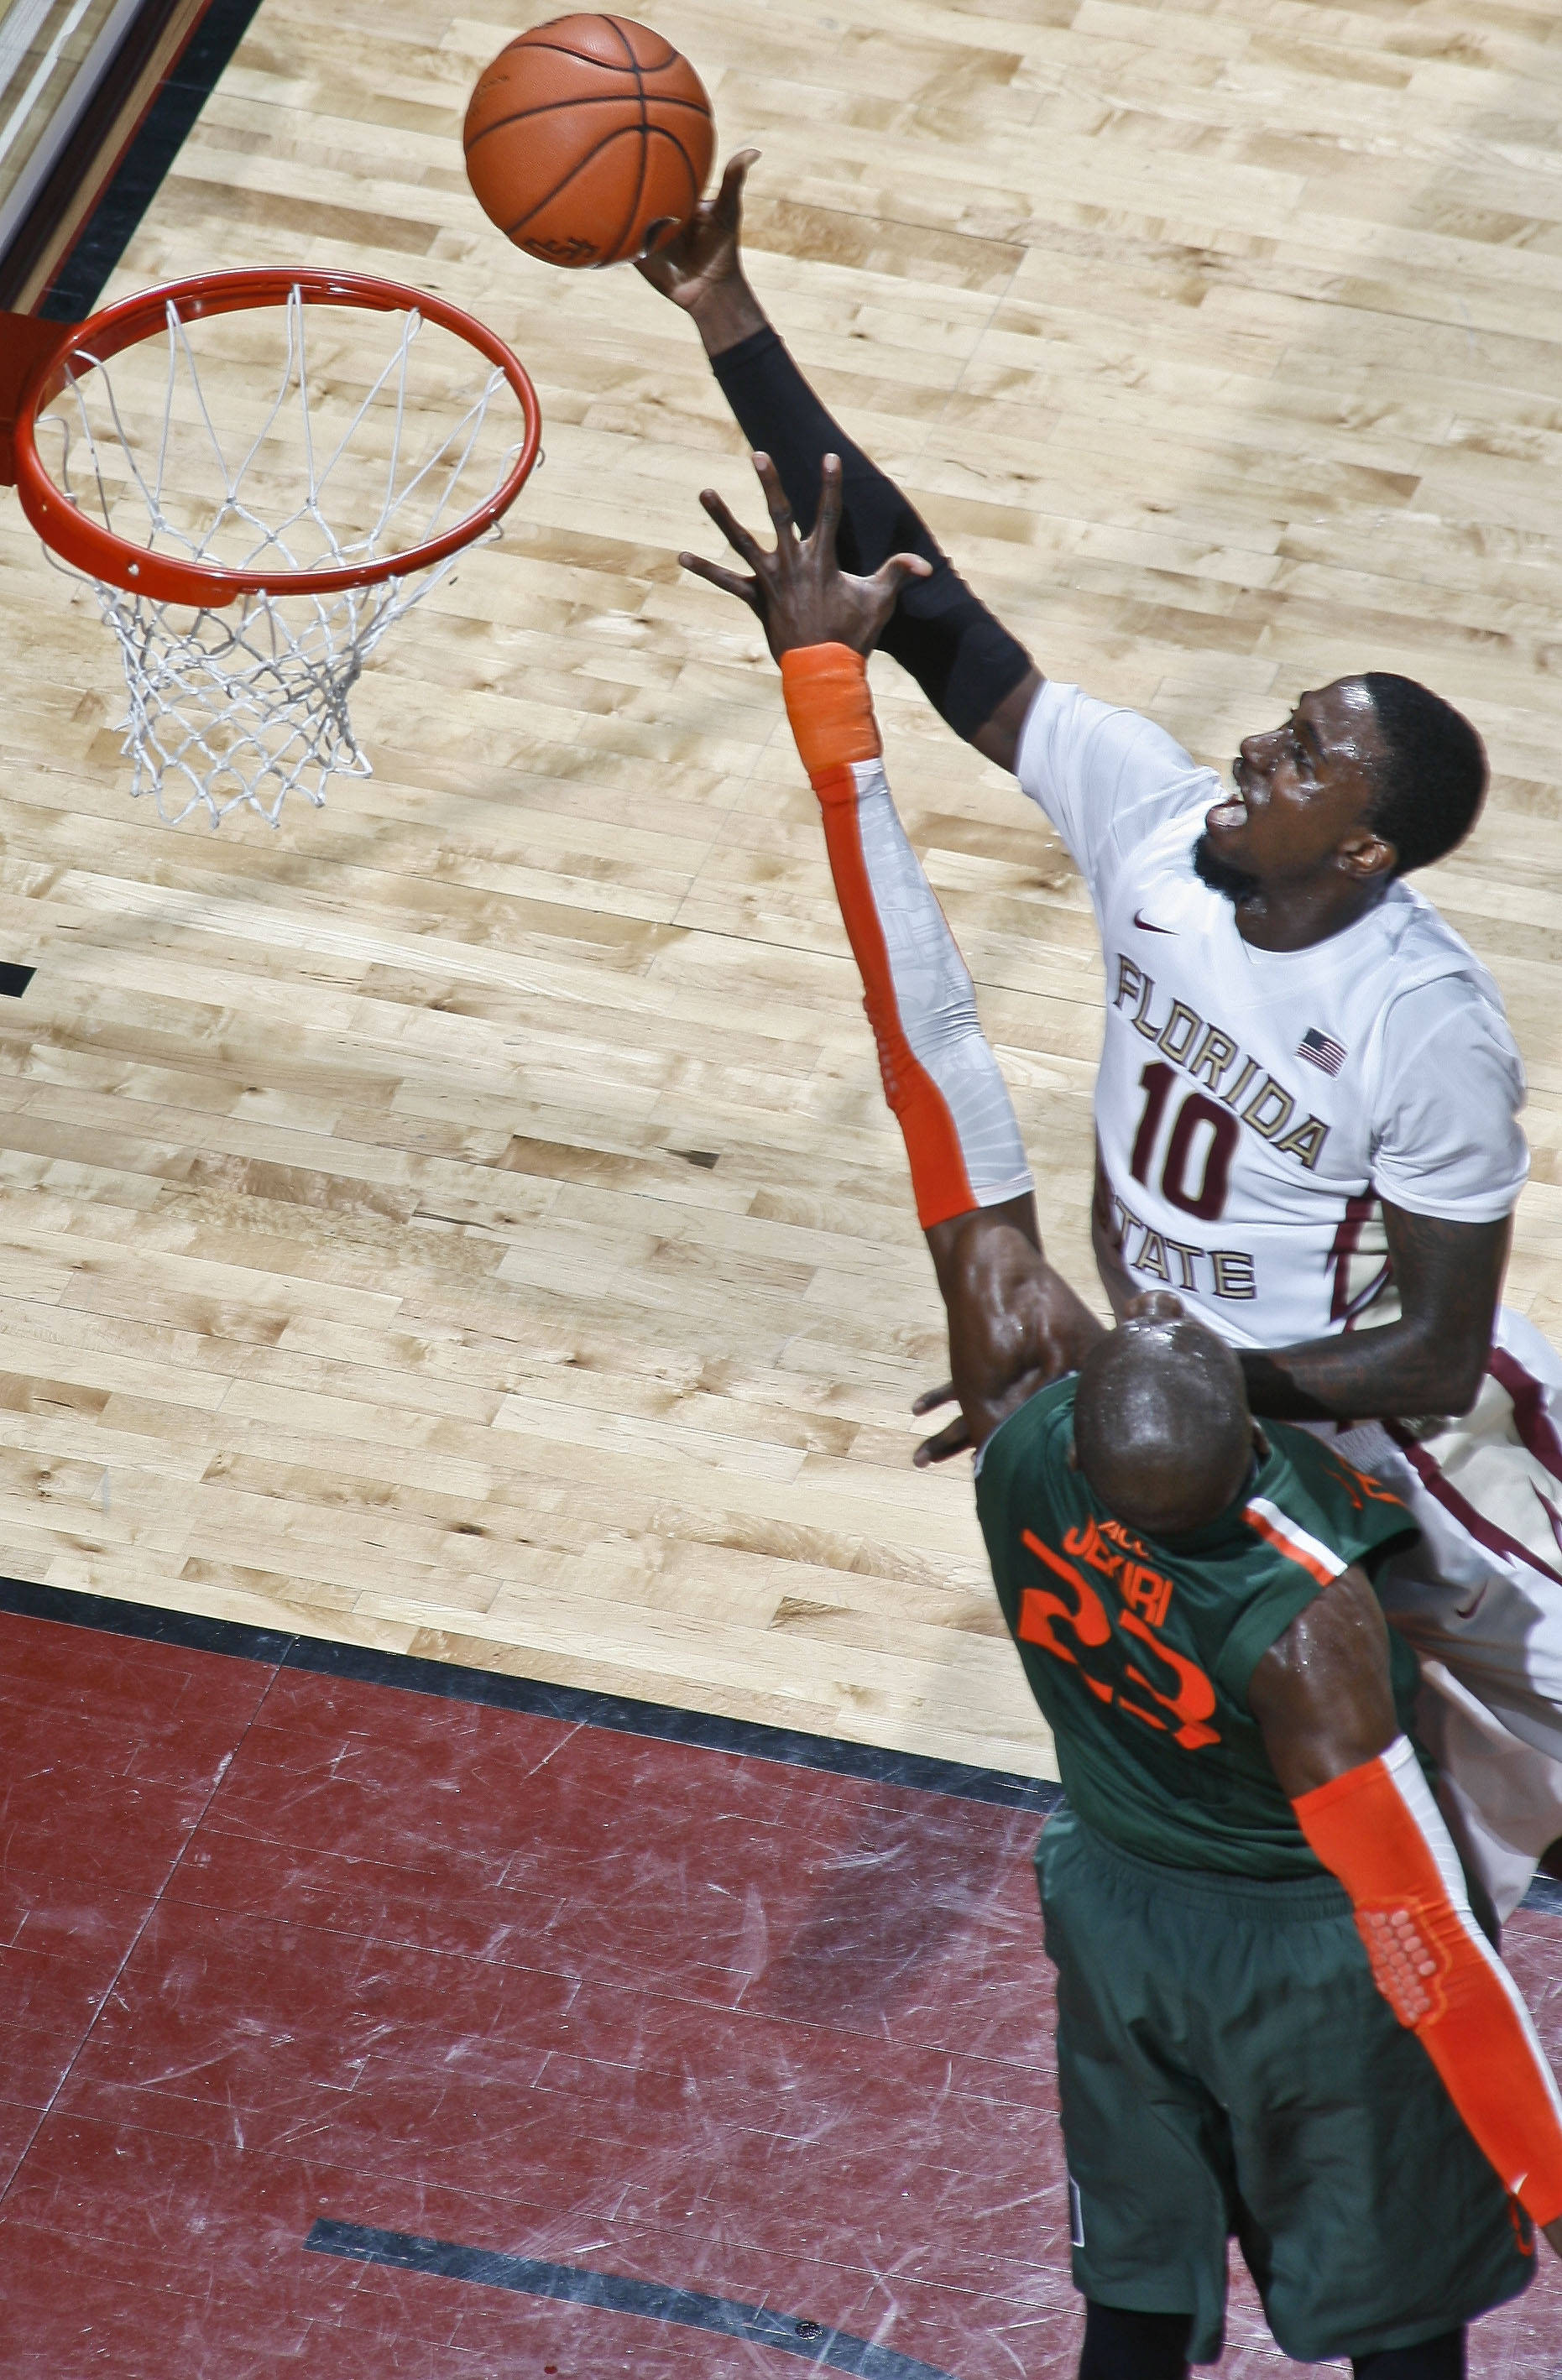 Feb 10, 2014; Tallahassee, FL, USA; Seminoles forward Okaro White (10) makes a layup over the defense of Miami Hurricanes center Tonye Jekiri (23) in the first half. Phil Sears-USA TODAY Sports